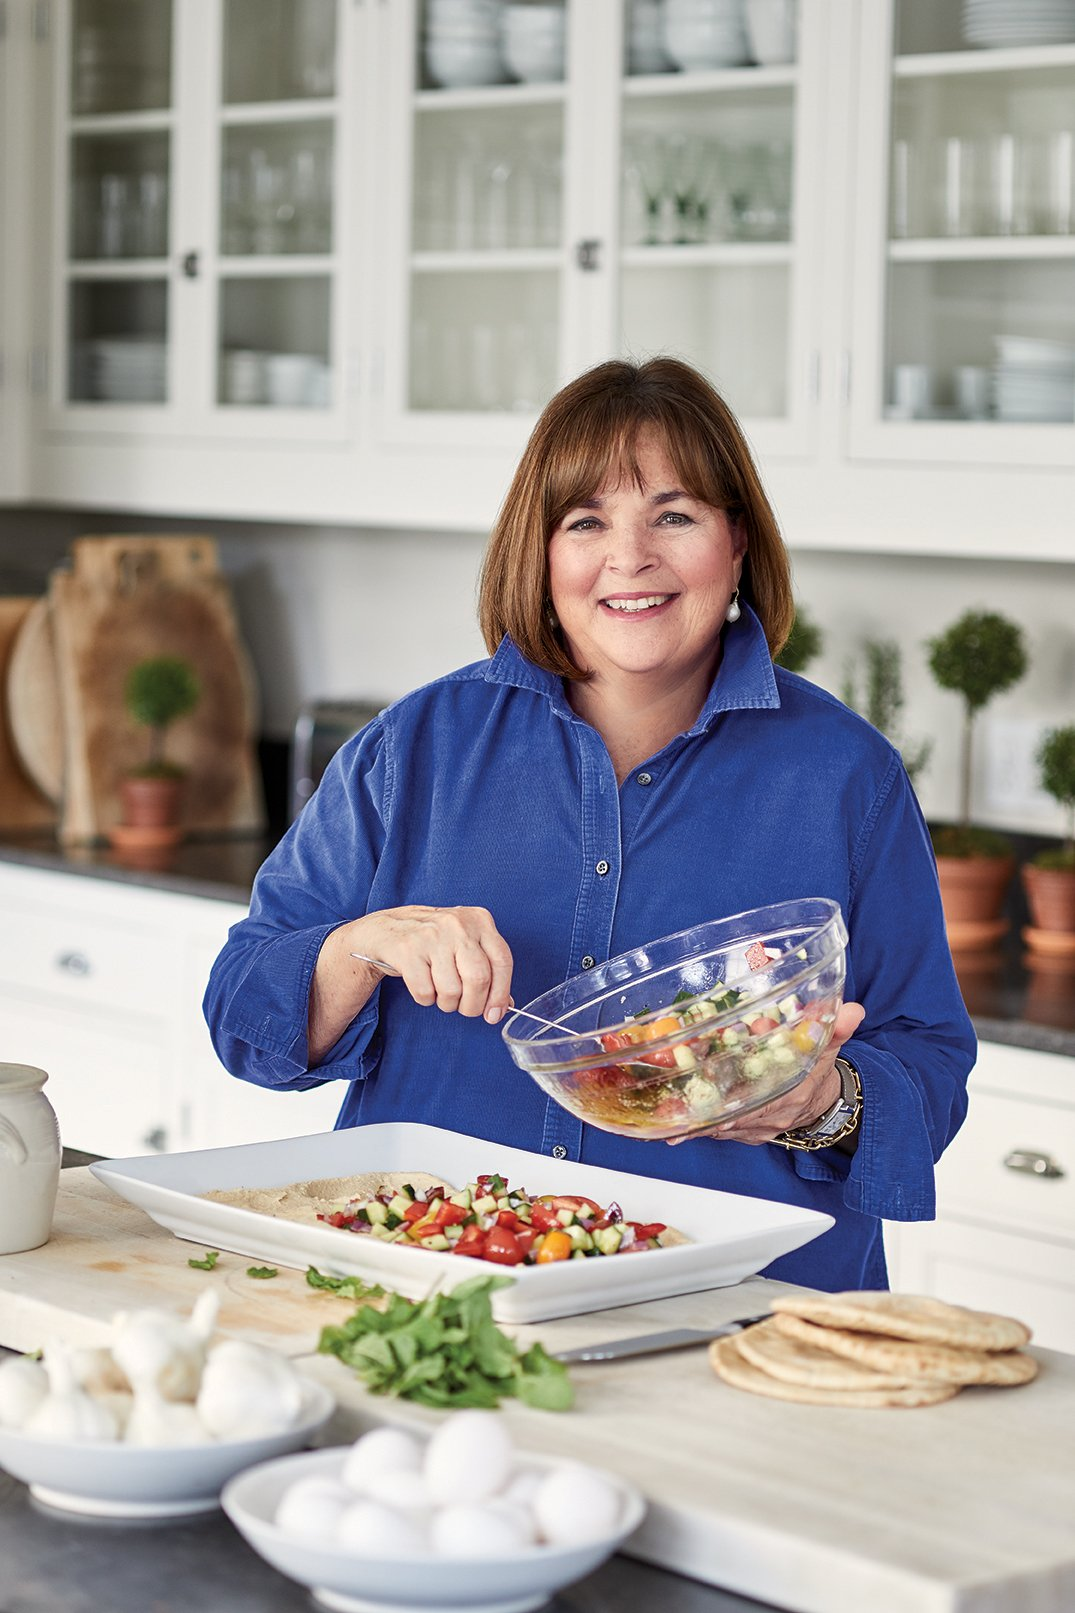 Before She Was The Barefoot Contessa Ina Garten Renovated Houses In Dc